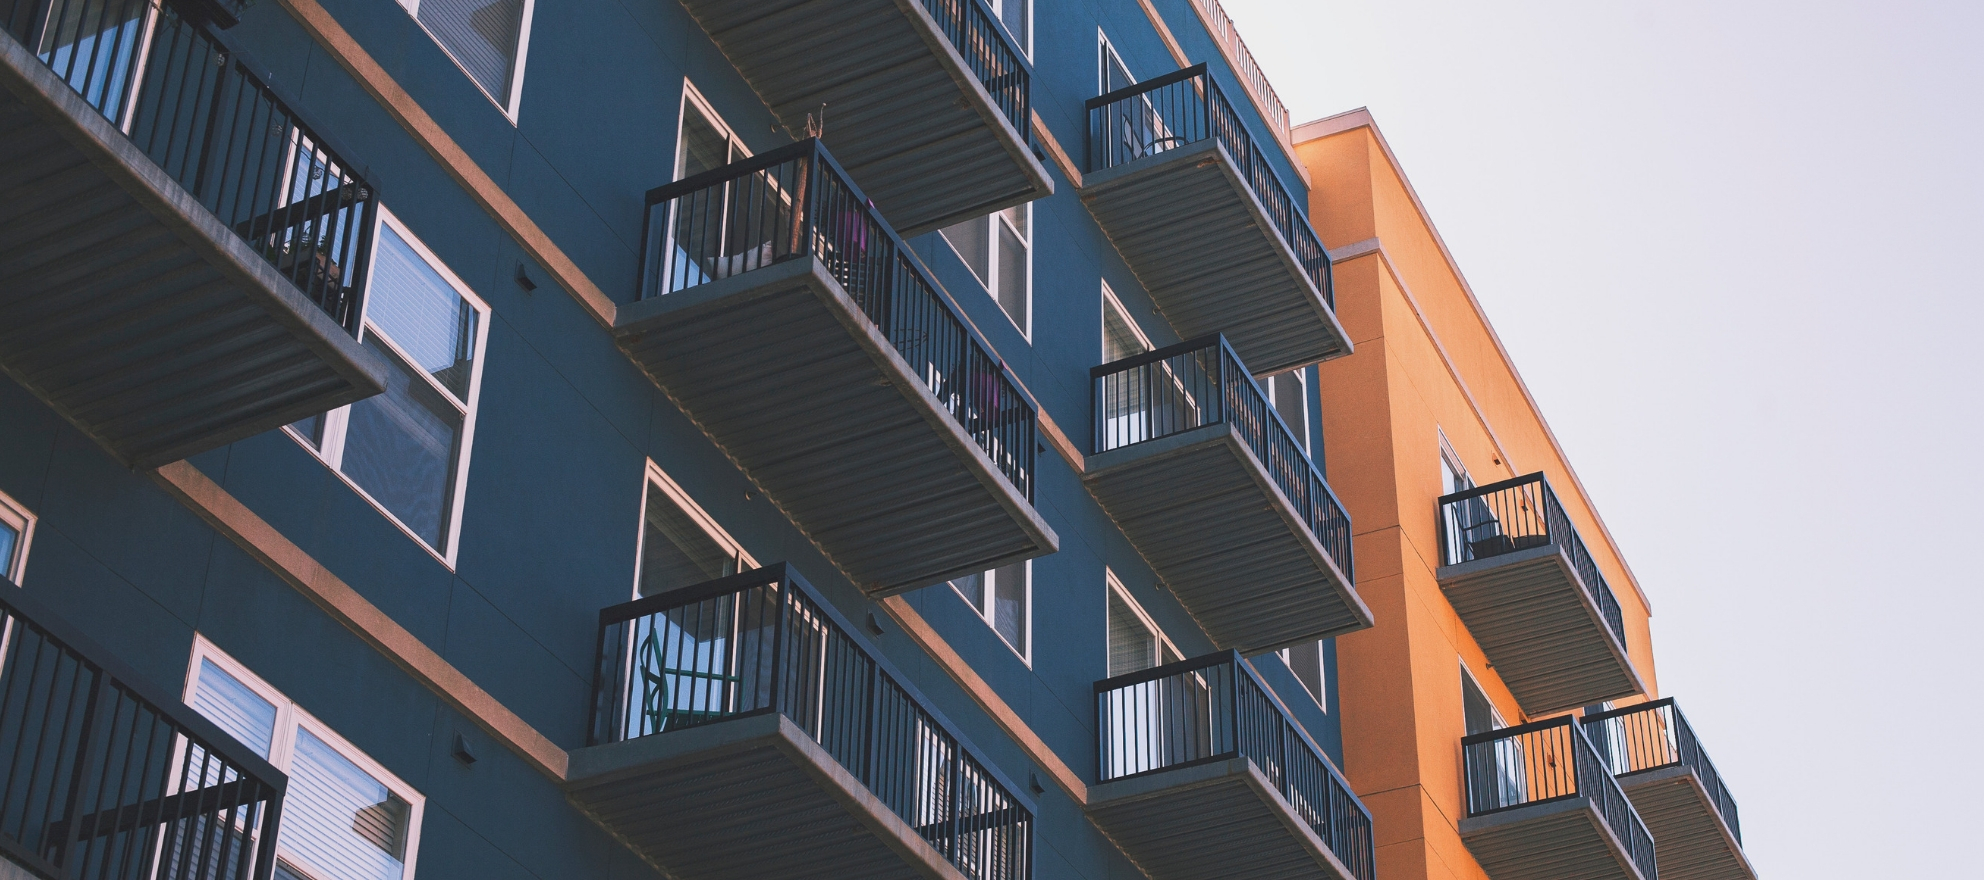 Selling apartments? Here's what you should know